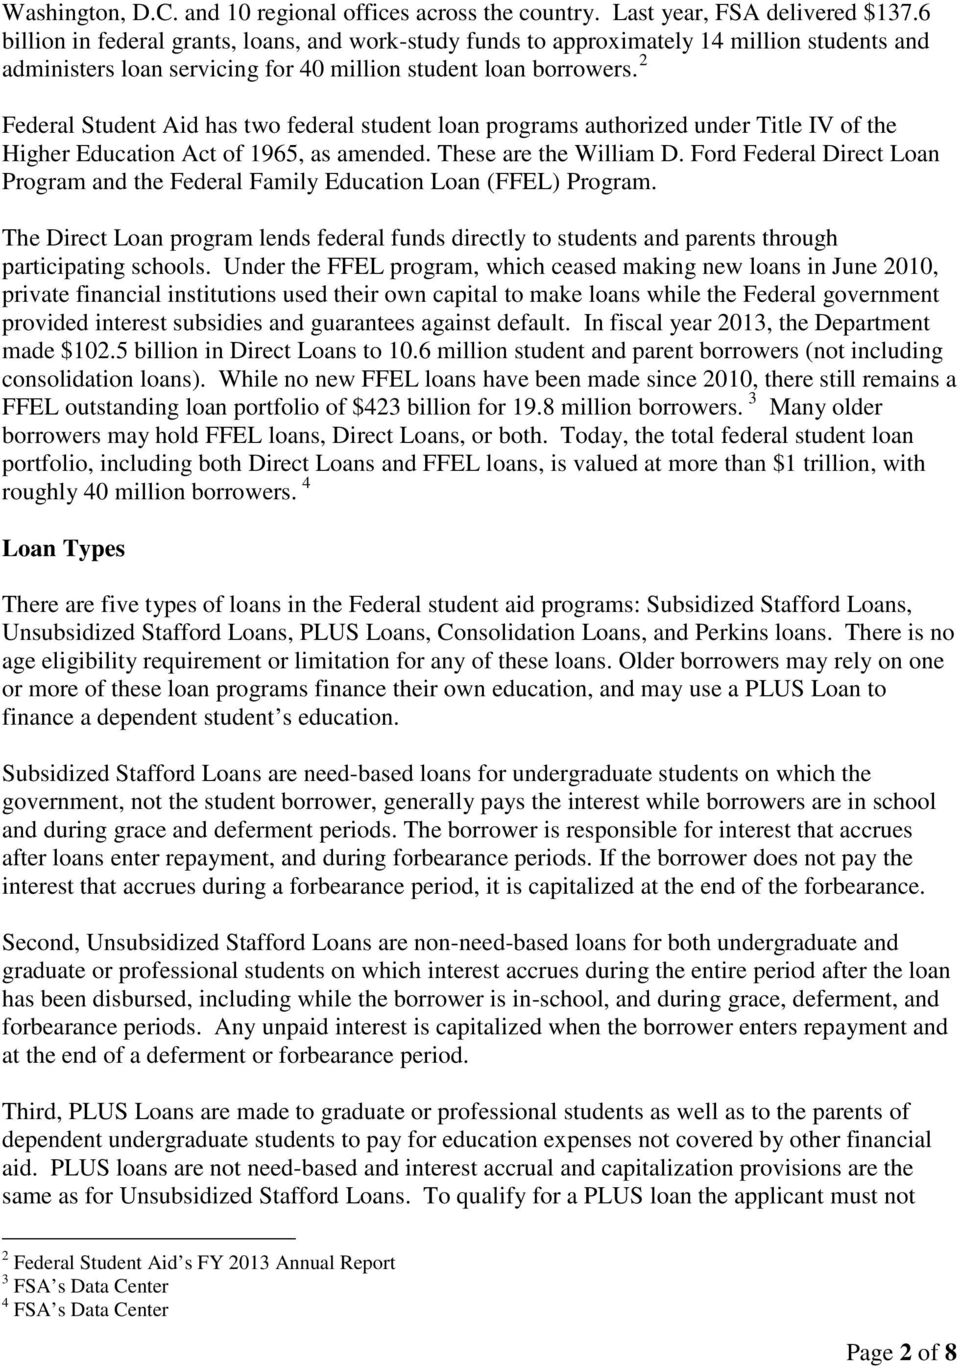 2 Federal Student Aid has two federal student loan programs authorized under Title IV of the Higher Education Act of 1965, as amended. These are the William D.